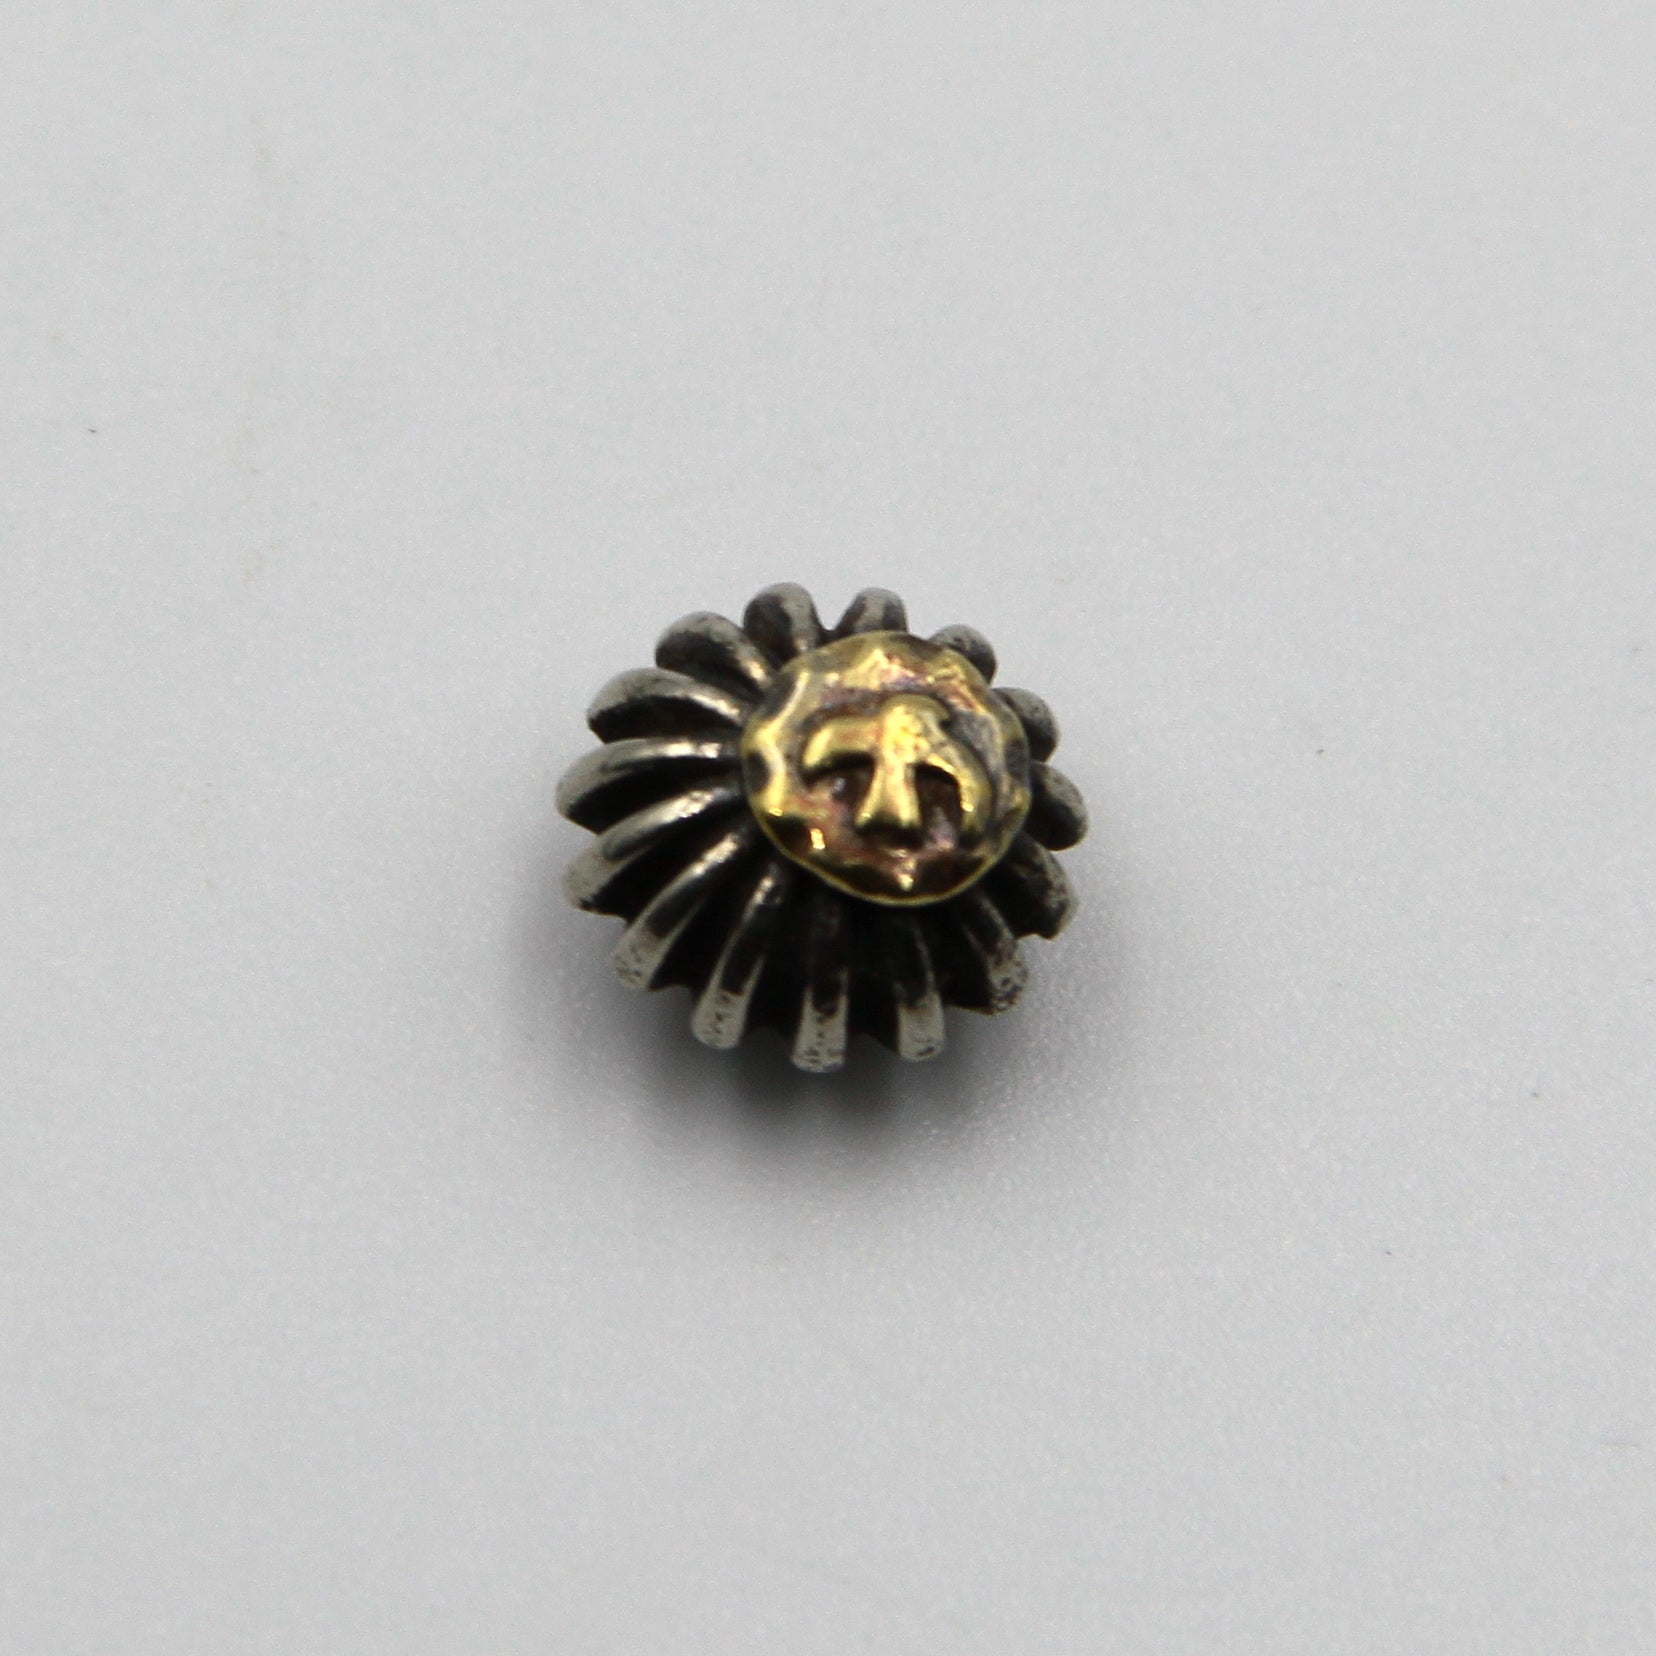 Goros Birds Brass Conchos Leather Craft Decoration Concho Rivets Screw Back - Metal Field